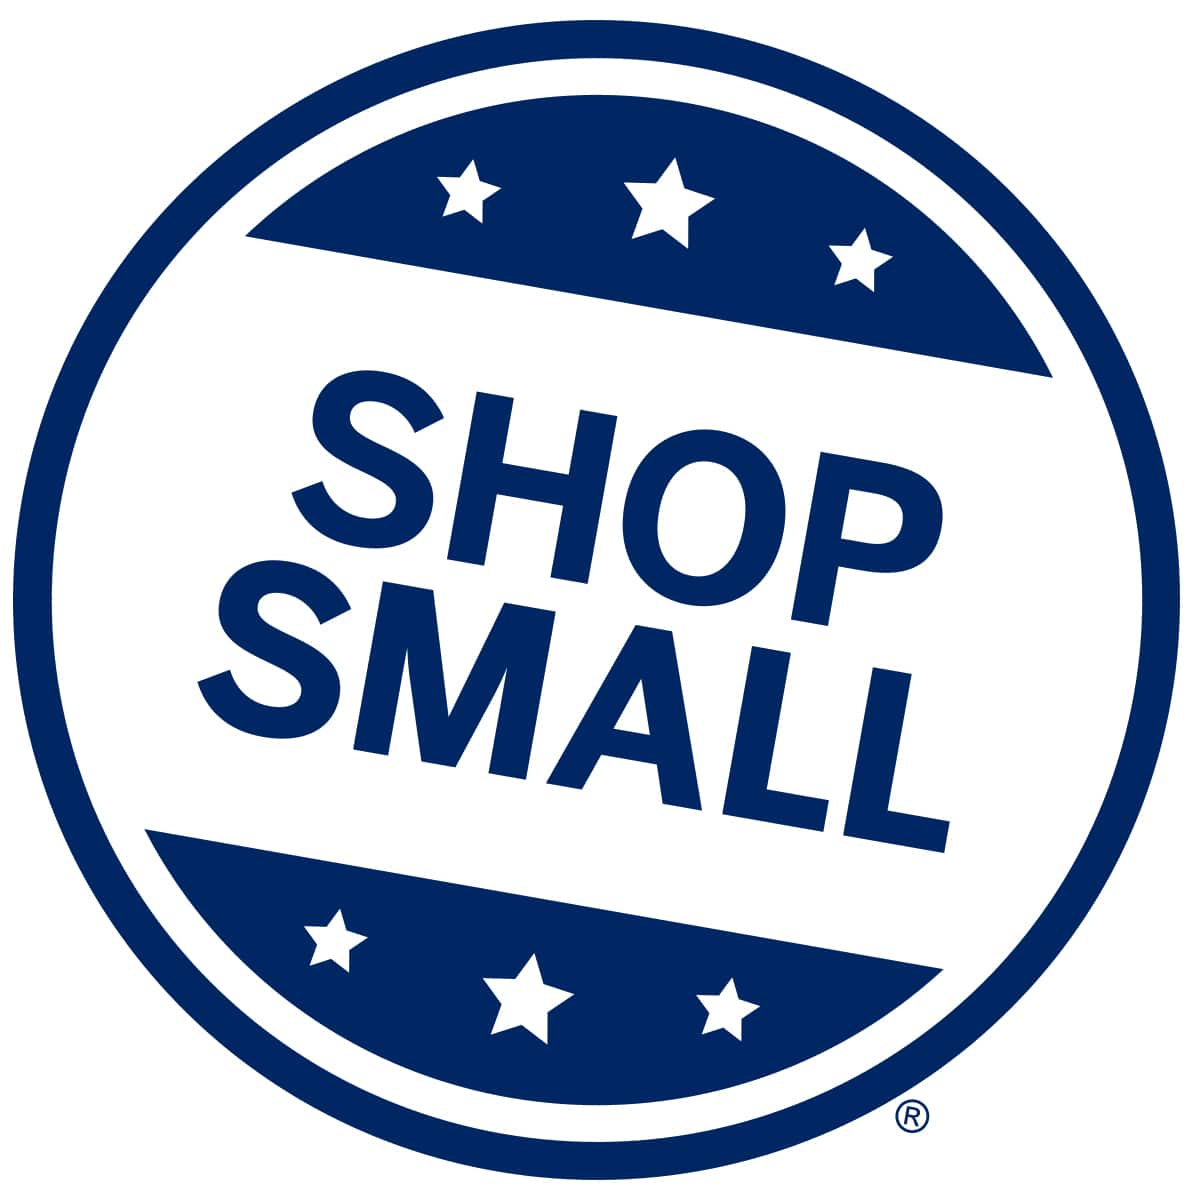 Small Business Saturday 2016 -- Get Your Free Kit!